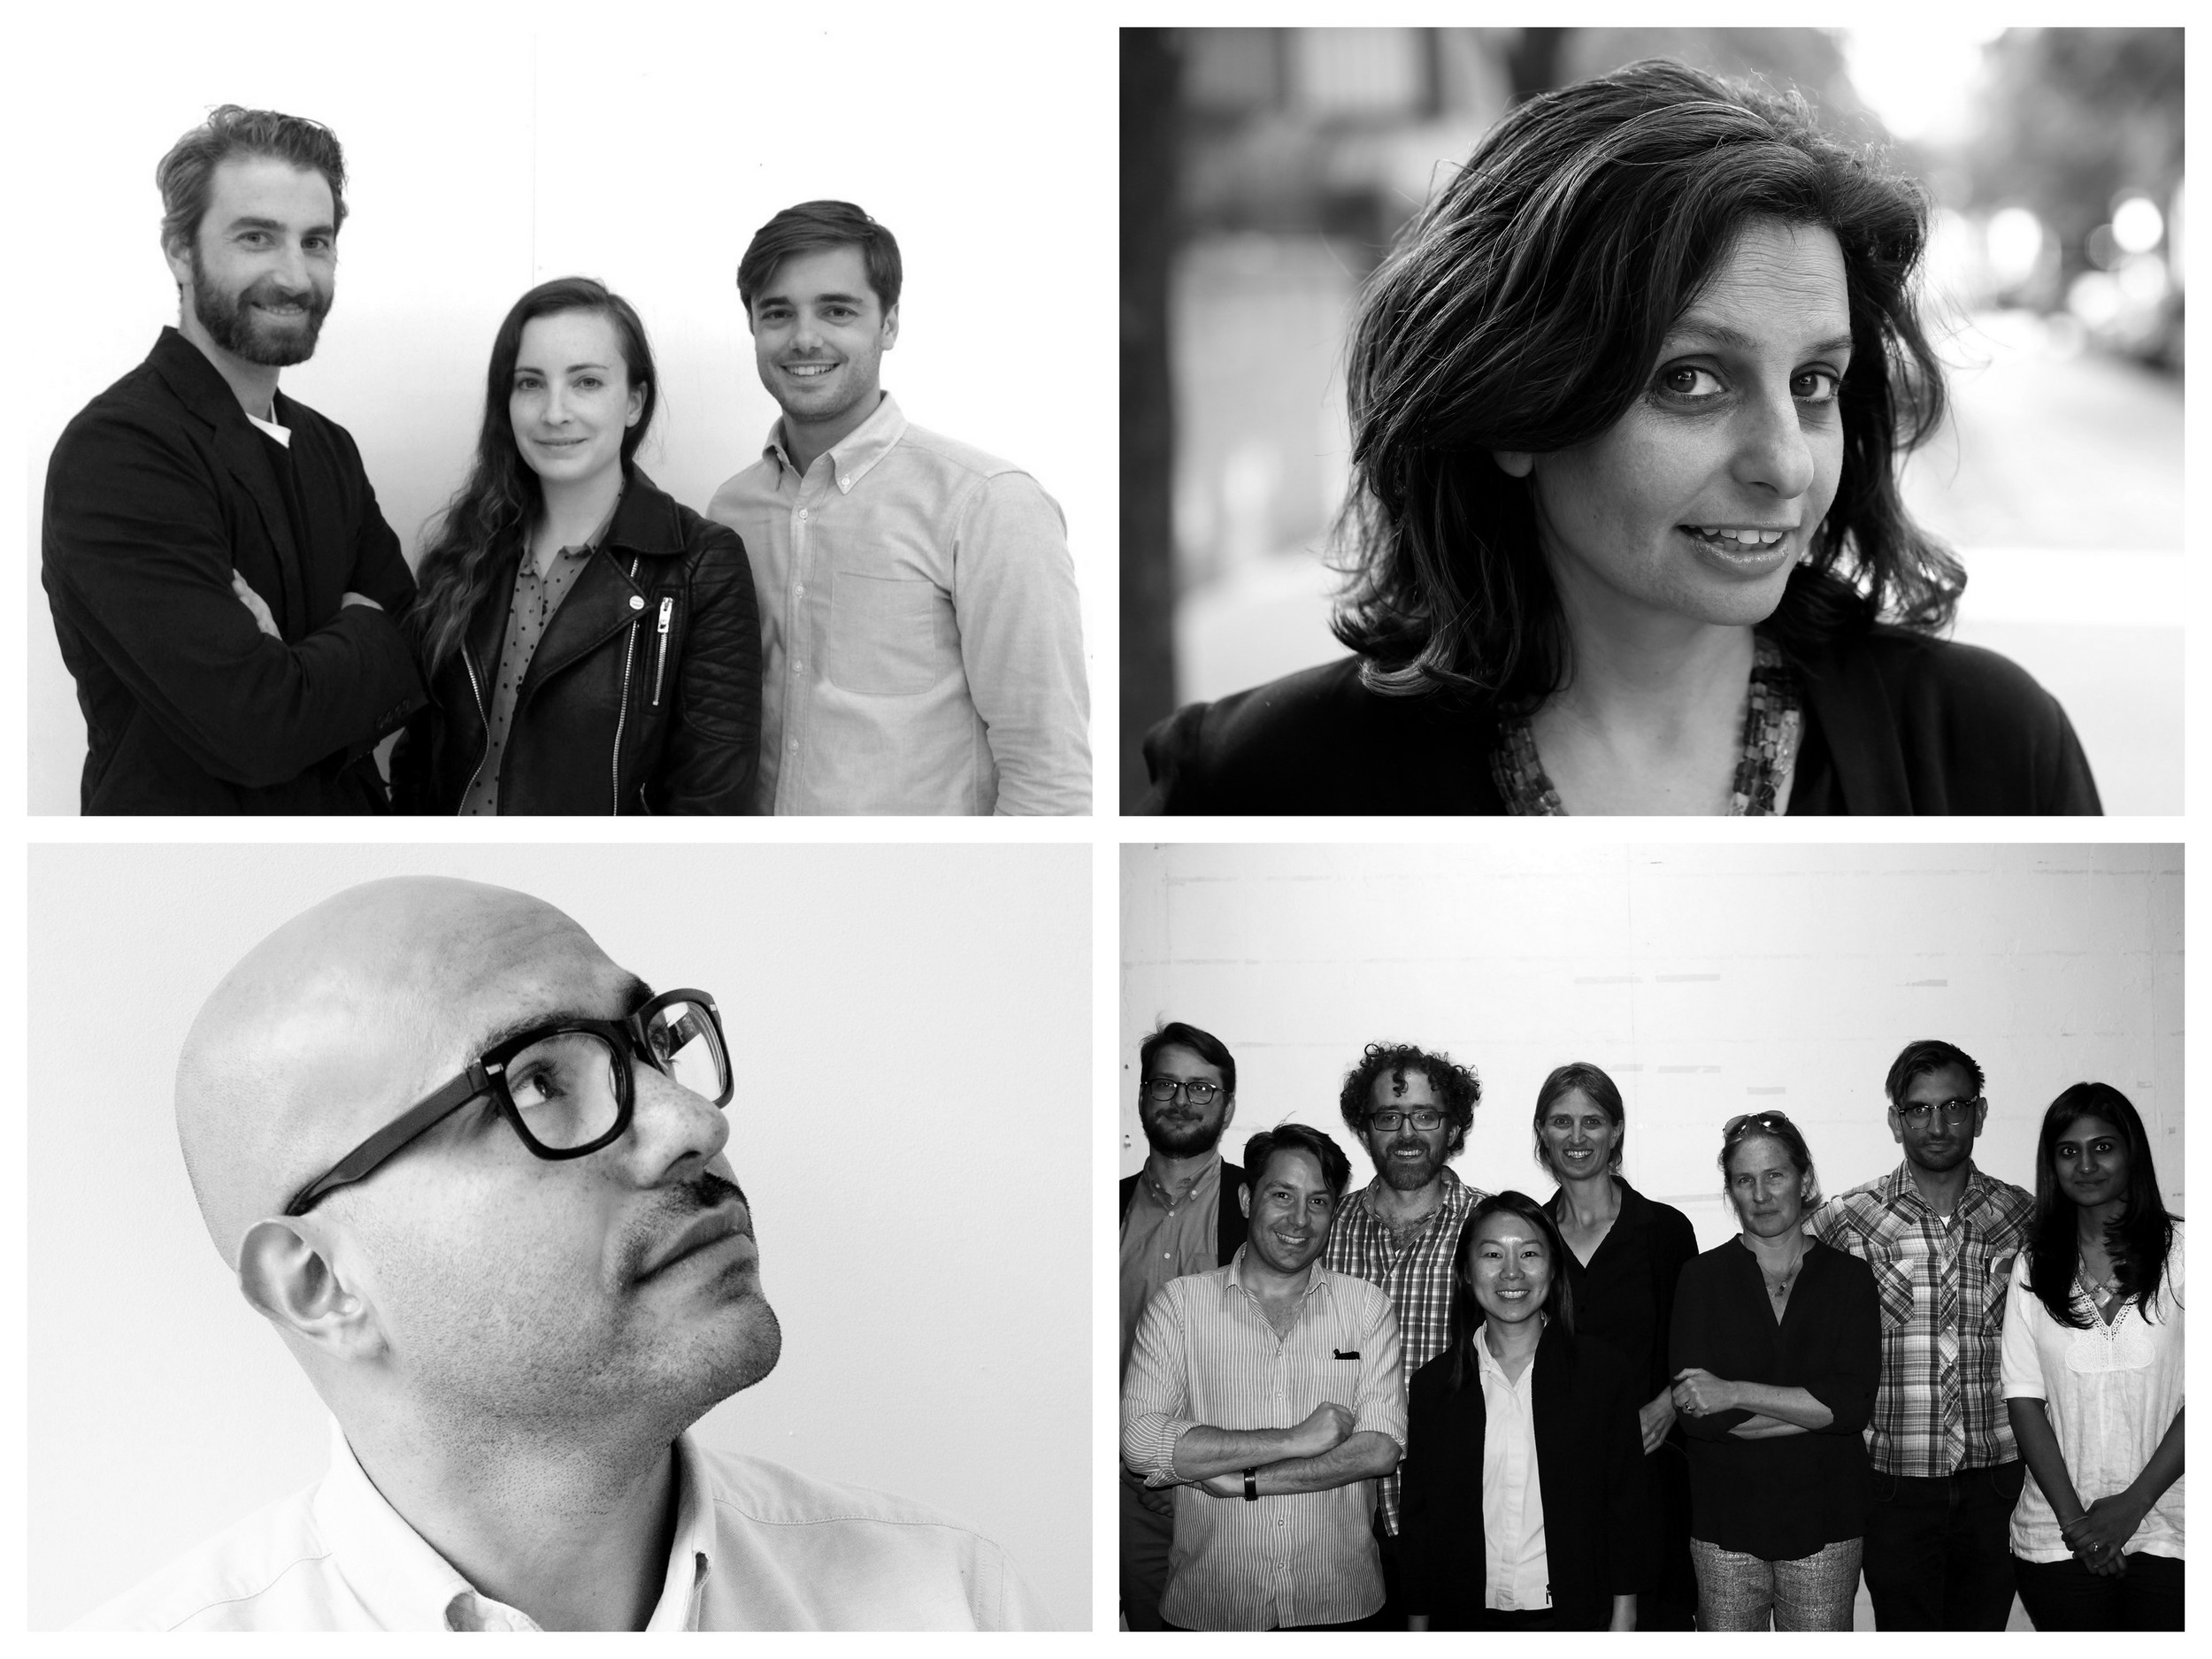 IPA Fellows. Clockwise from top left: Nathan Rich, Miriam Peterson, and Sagi Golan; Nadine Maleh; Kaja Kühl (rear, center) with Columbia University Graduate School for Architecture, Preservation and Planning's 5 Borough Studio; and Quilian Riano. Photos courtesy IPA Fellows.